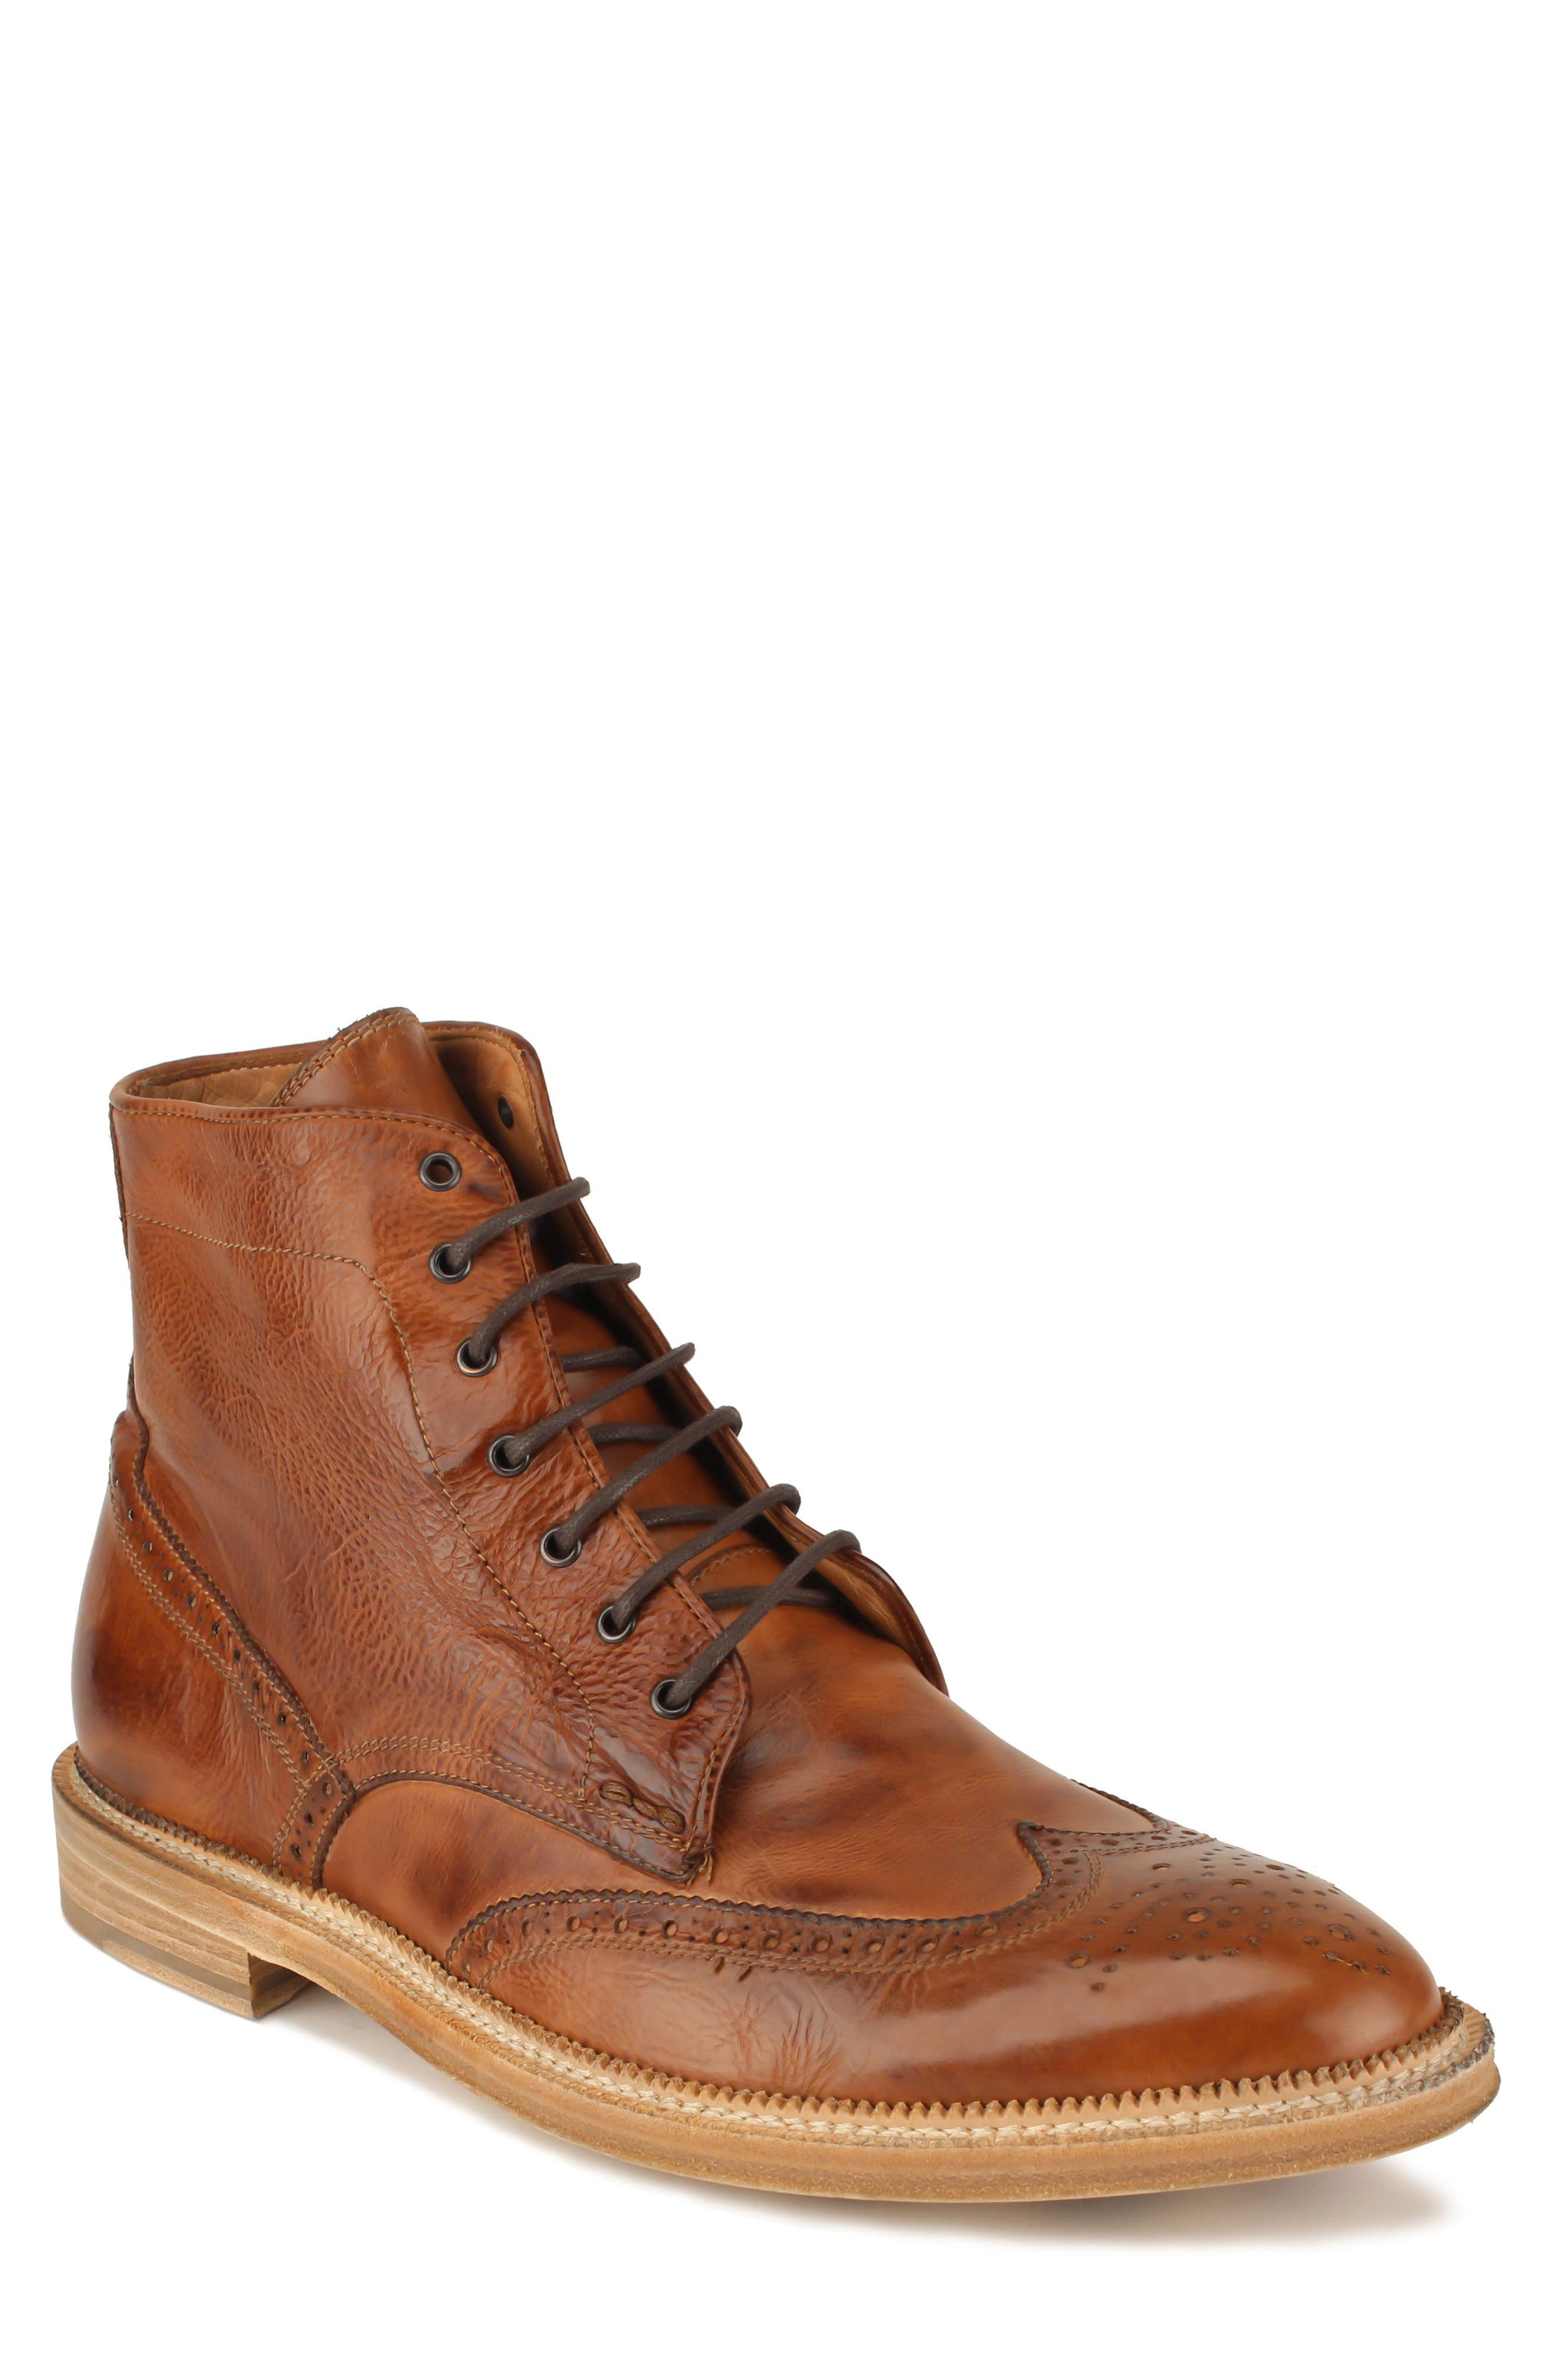 Alternate Image 1 Selected - Gordon Rush Max Wingtip Boot (Men)